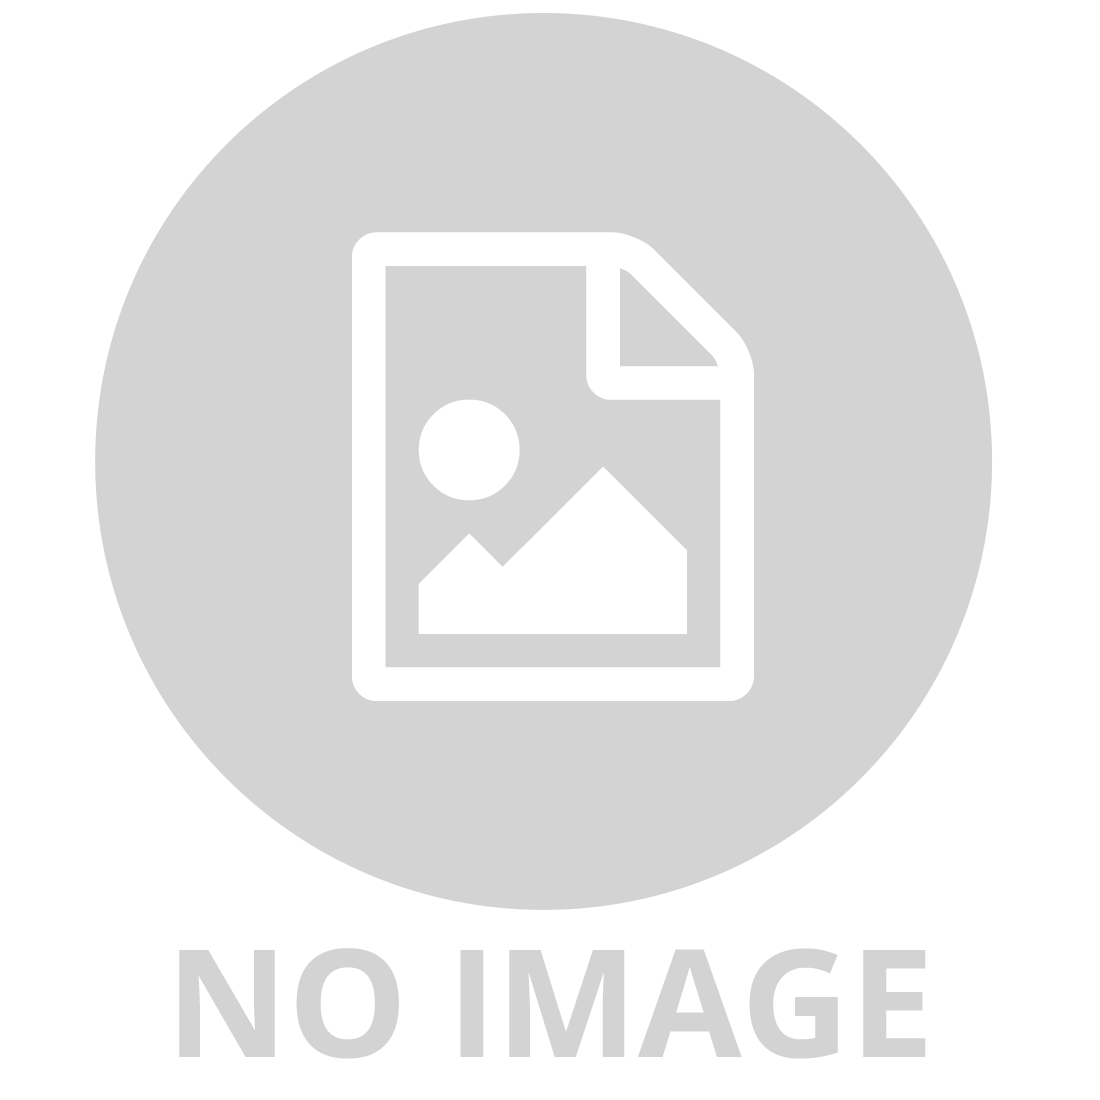 LEGO DC SUPER HEROES 76118 MR FREEZE BATCYCLE BATTLE